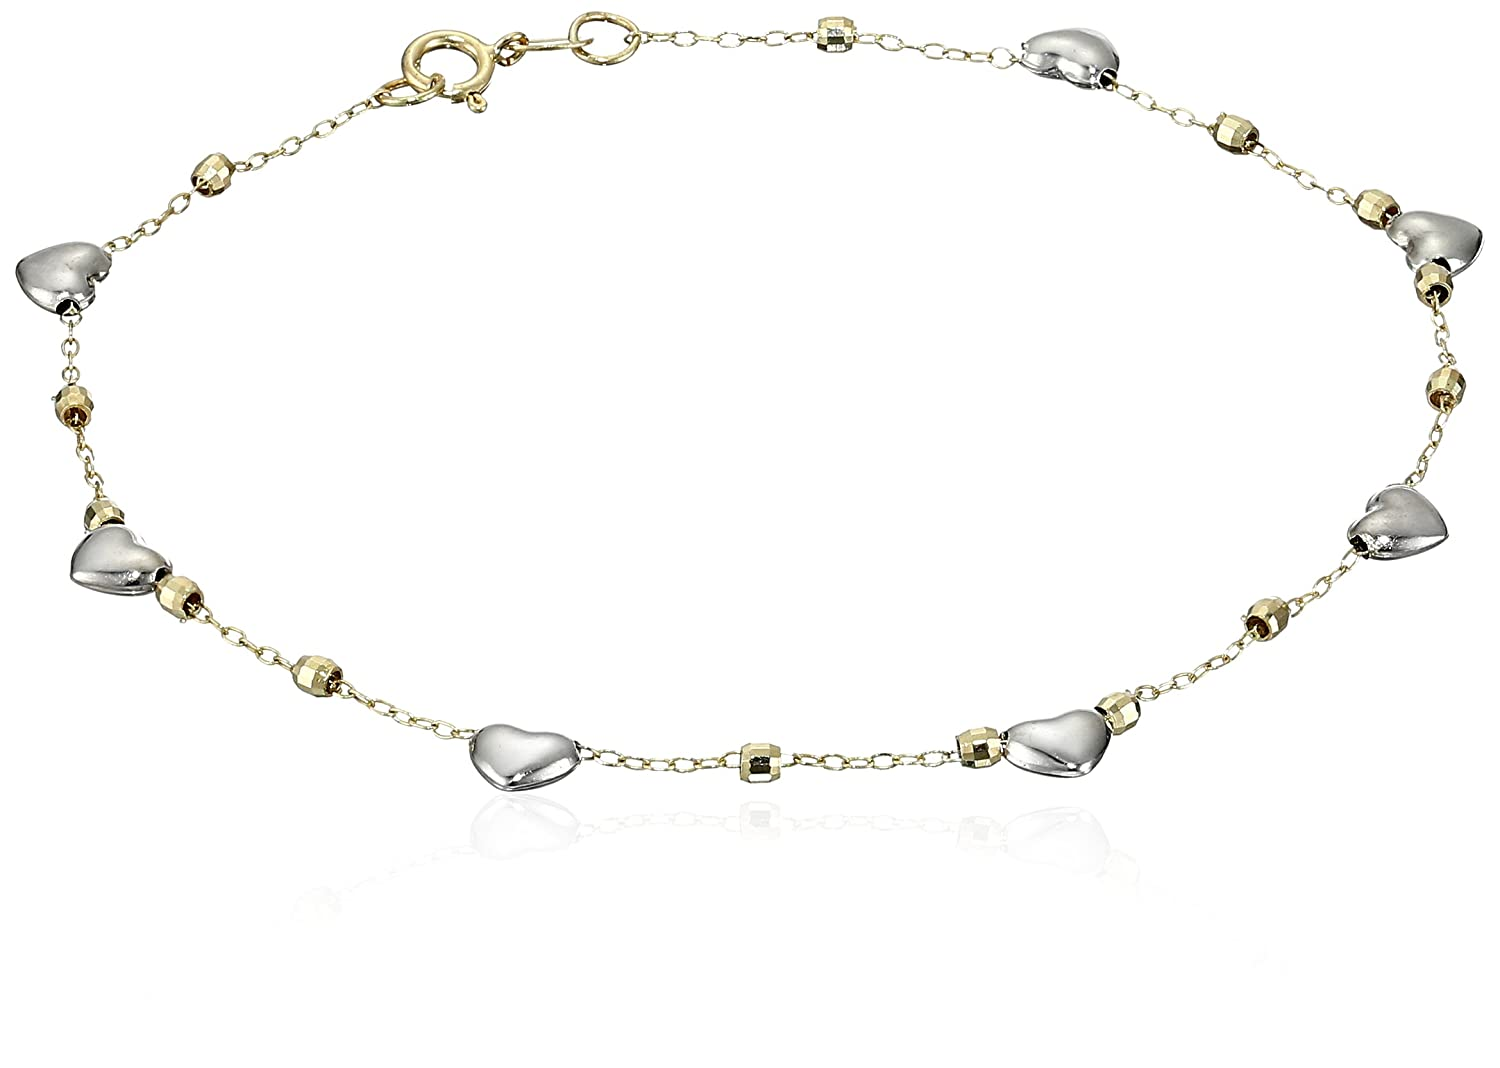 14k Gold Hearts Station and High Polished Bead Bracelet, 7.5""